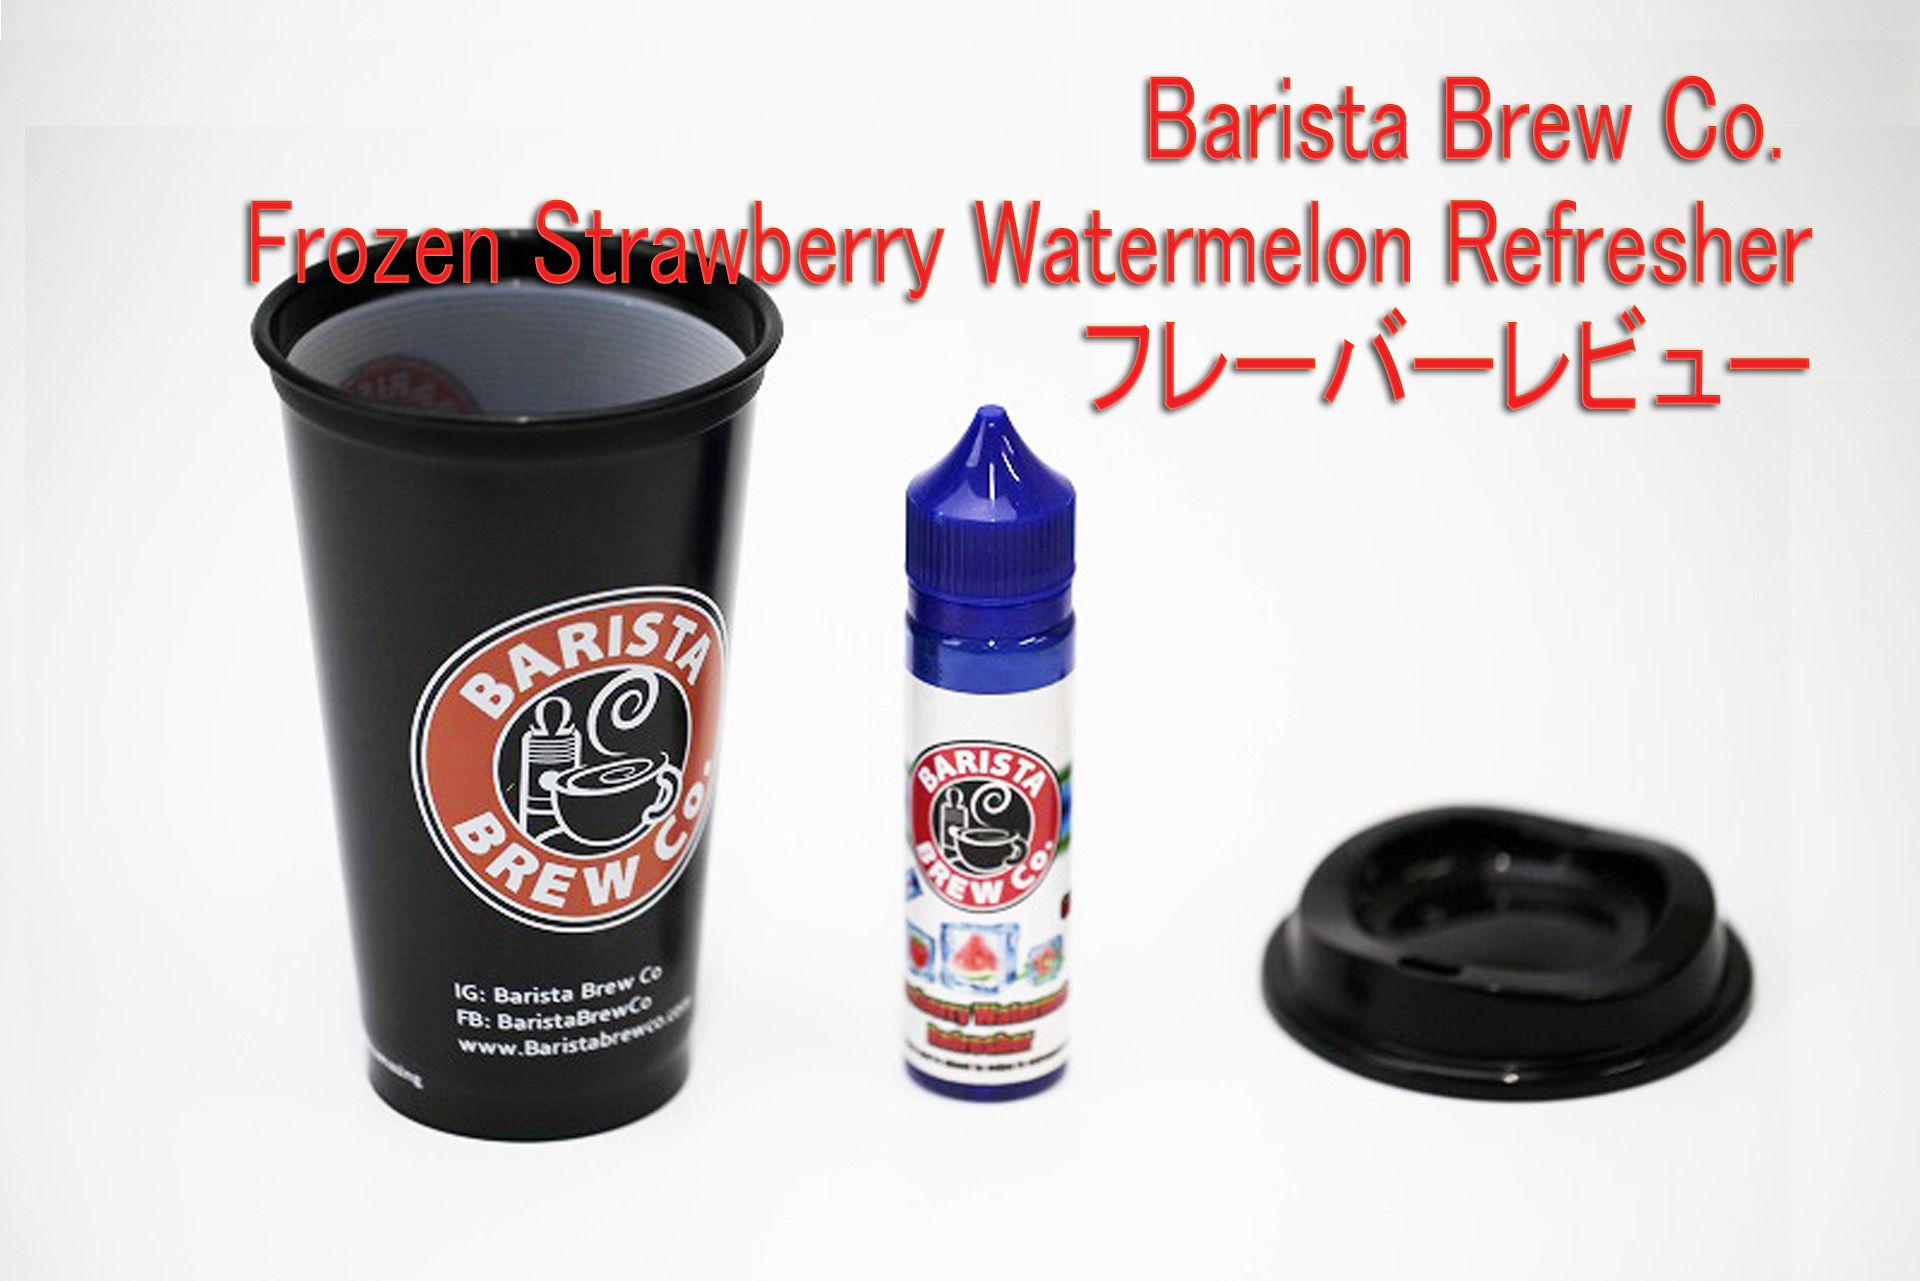 Barista Brew Co. Frozen Strawberry Watermelon Refresherフレーバーレビュー